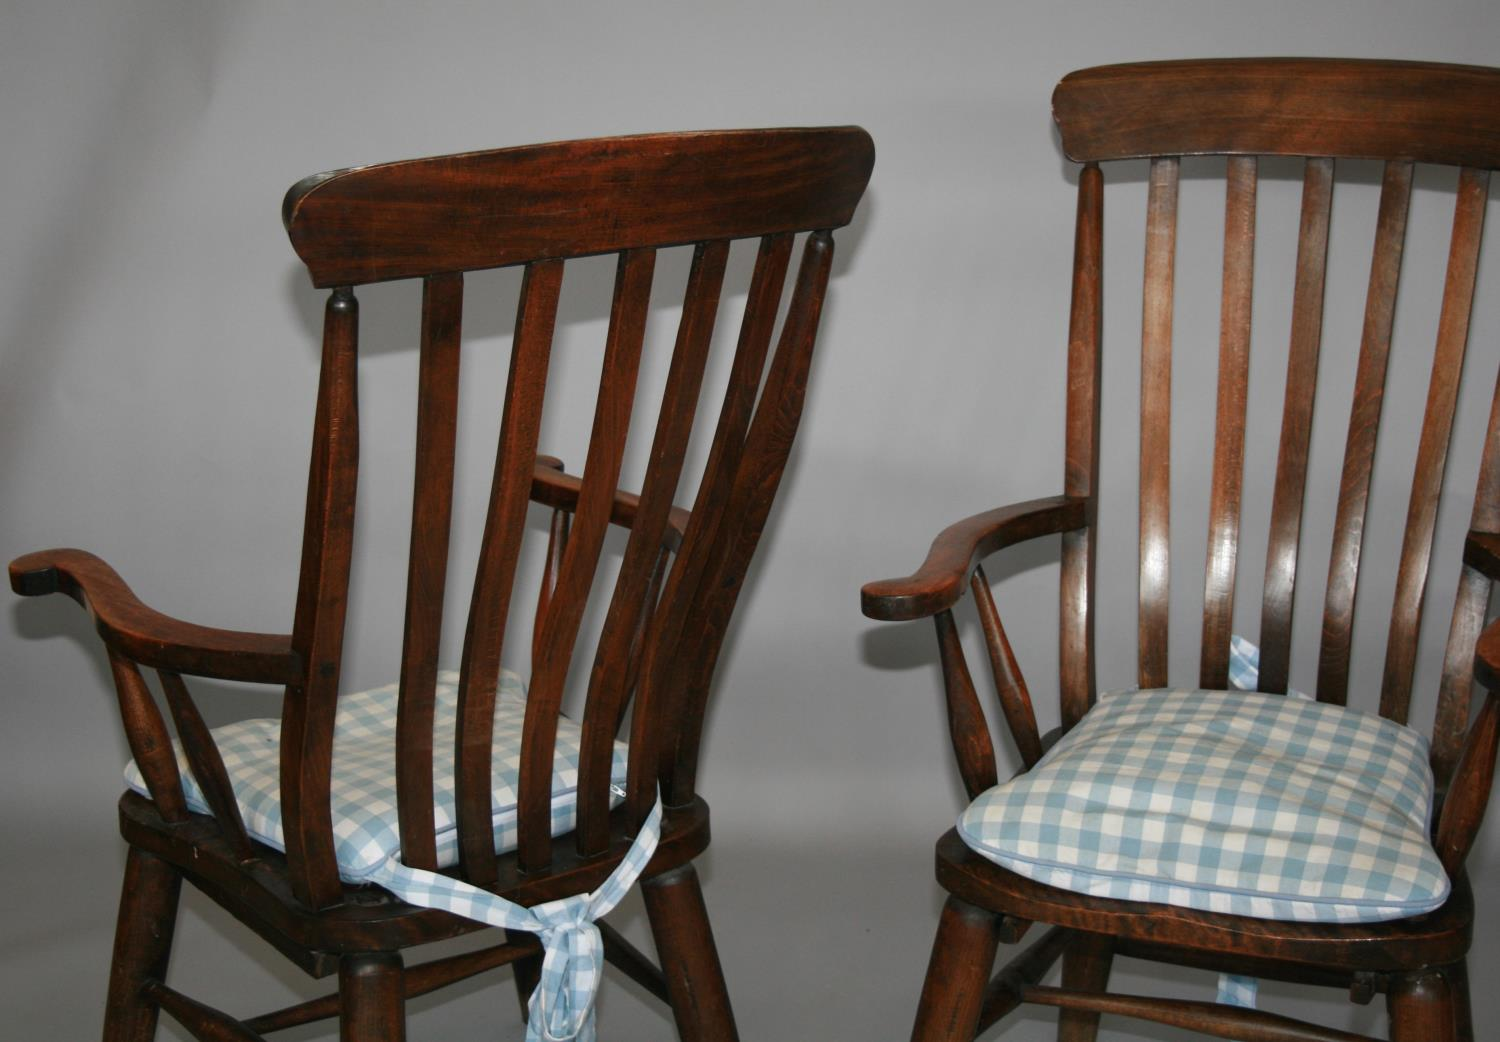 Pair of high back fork design kitchen chairs 65 W x 115 H x 60 D - Image 4 of 4